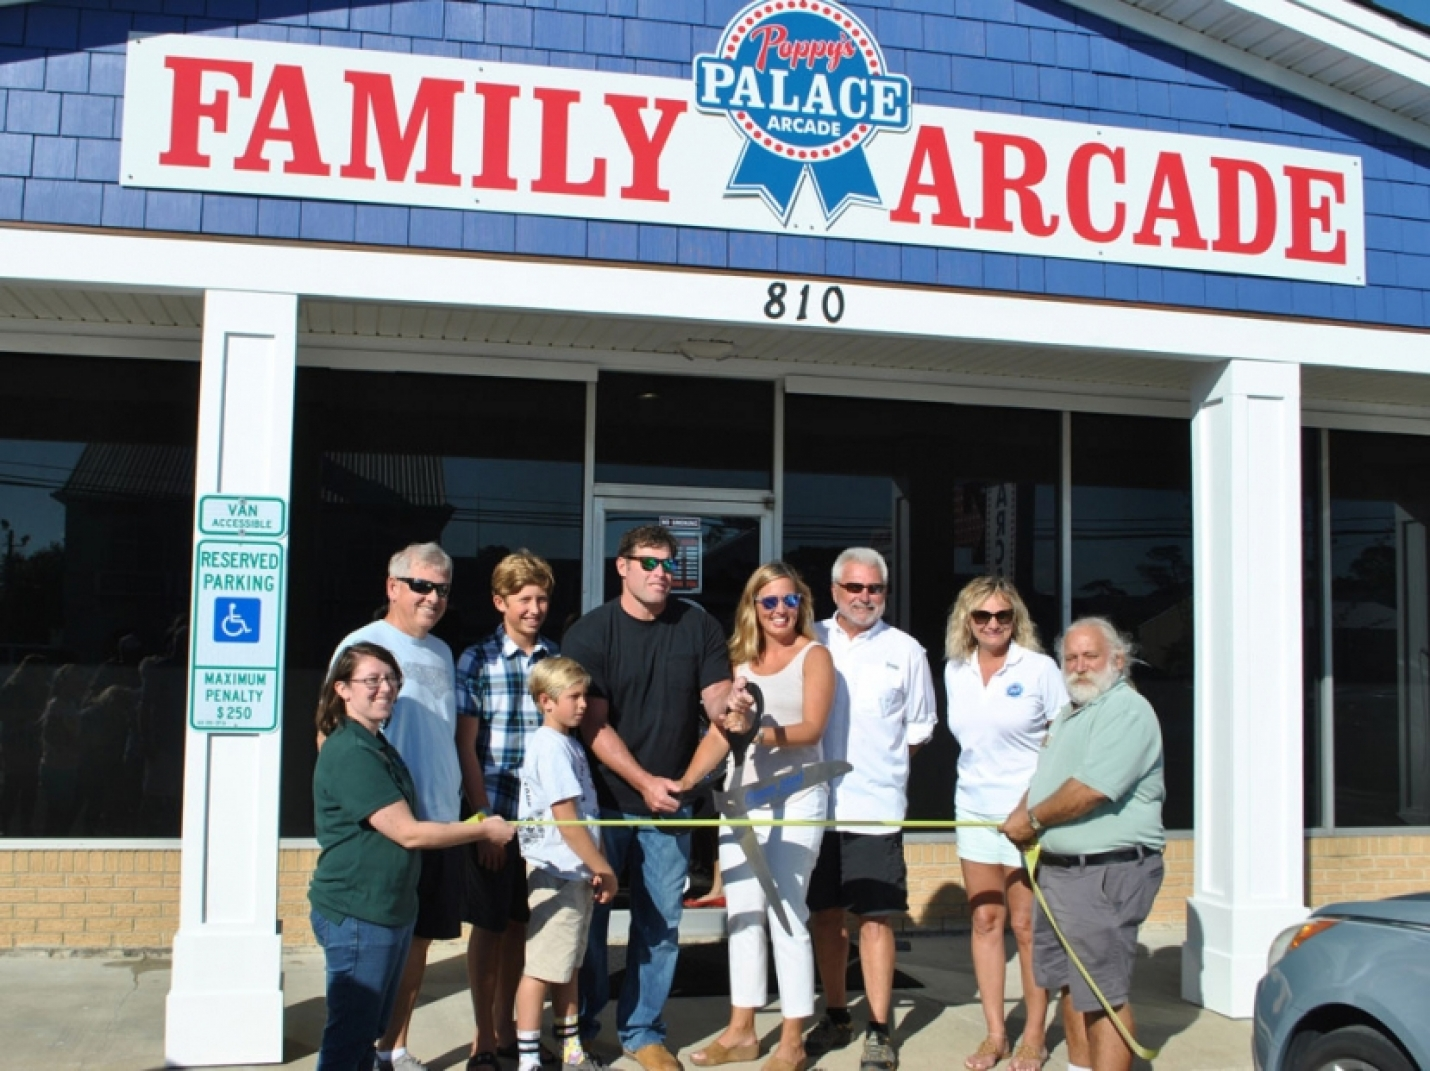 Poppy's Palace Arcade is perfect for Parties and Open Year Round